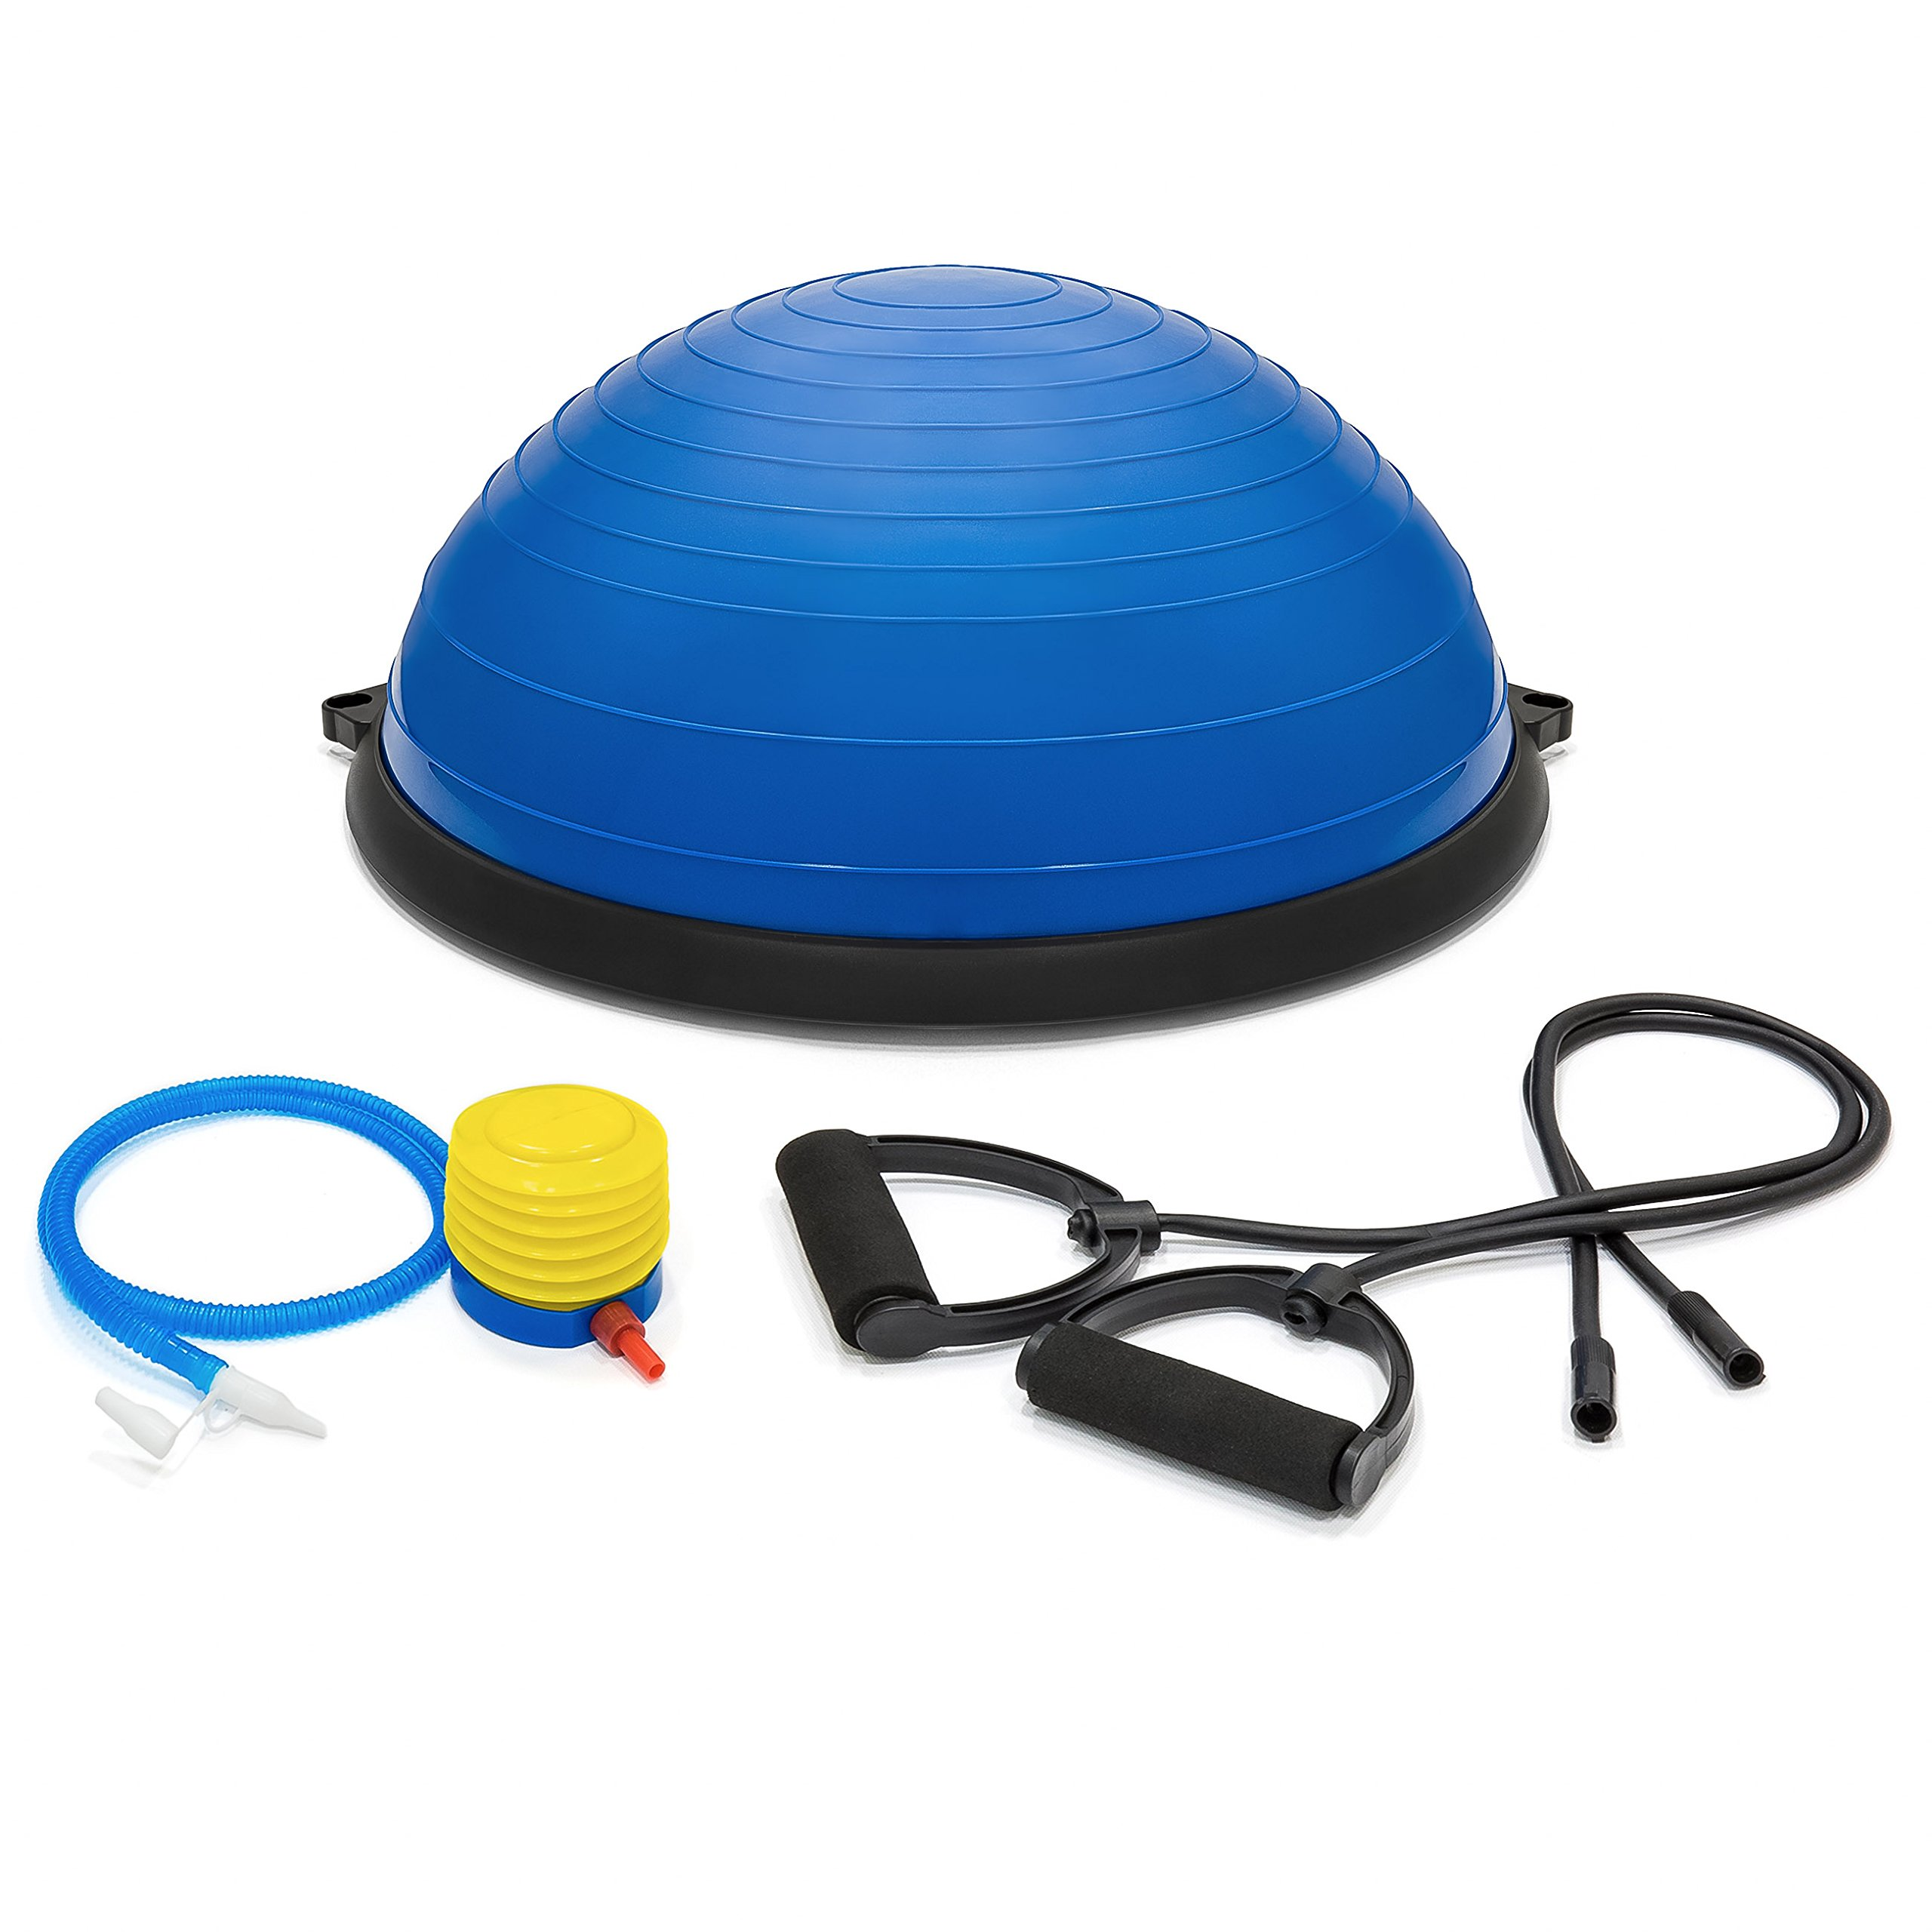 Best Choice Products Fitness Blue Yoga Balance Trainer ball W/ Resistance Bands & Pump Exercise Workout Kit